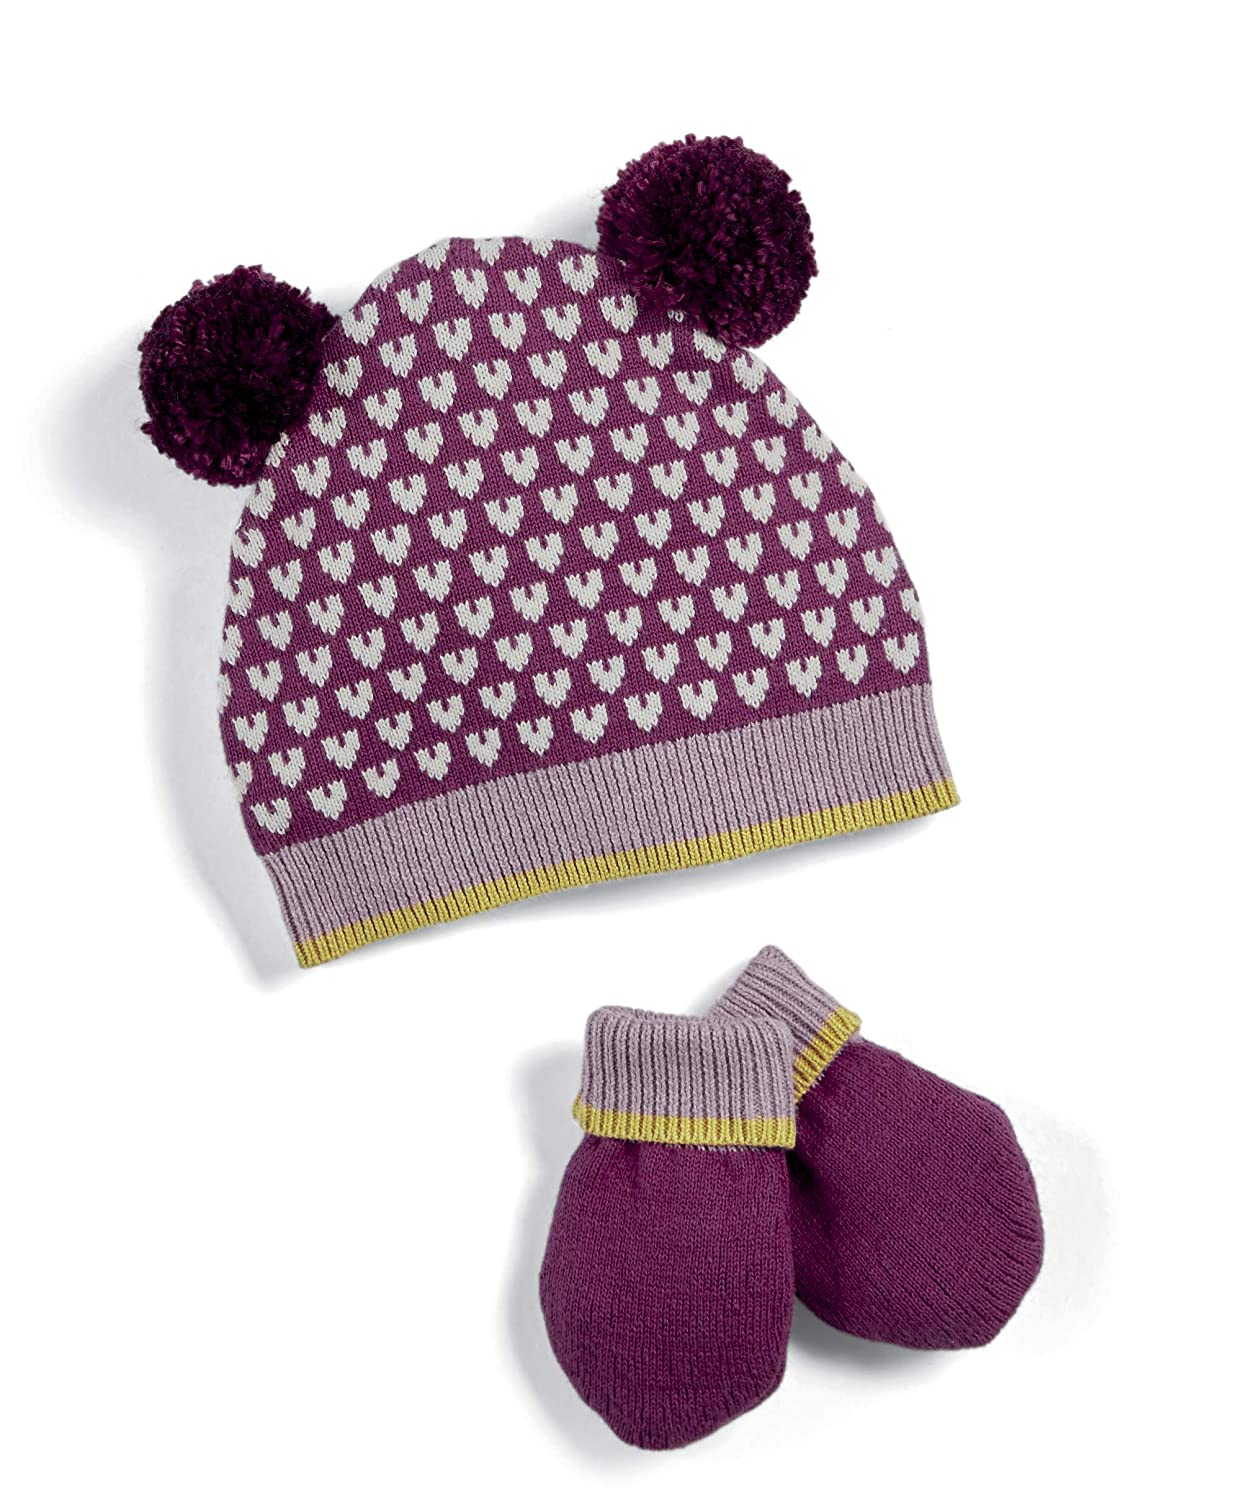 Mamas & Papas Knitted Hat And Mitts, Cappellino Bimba (Pink Sgp) Unica (Taglia Produttore: 6-12 Mesi) Mamas and Papas S432GP2B6